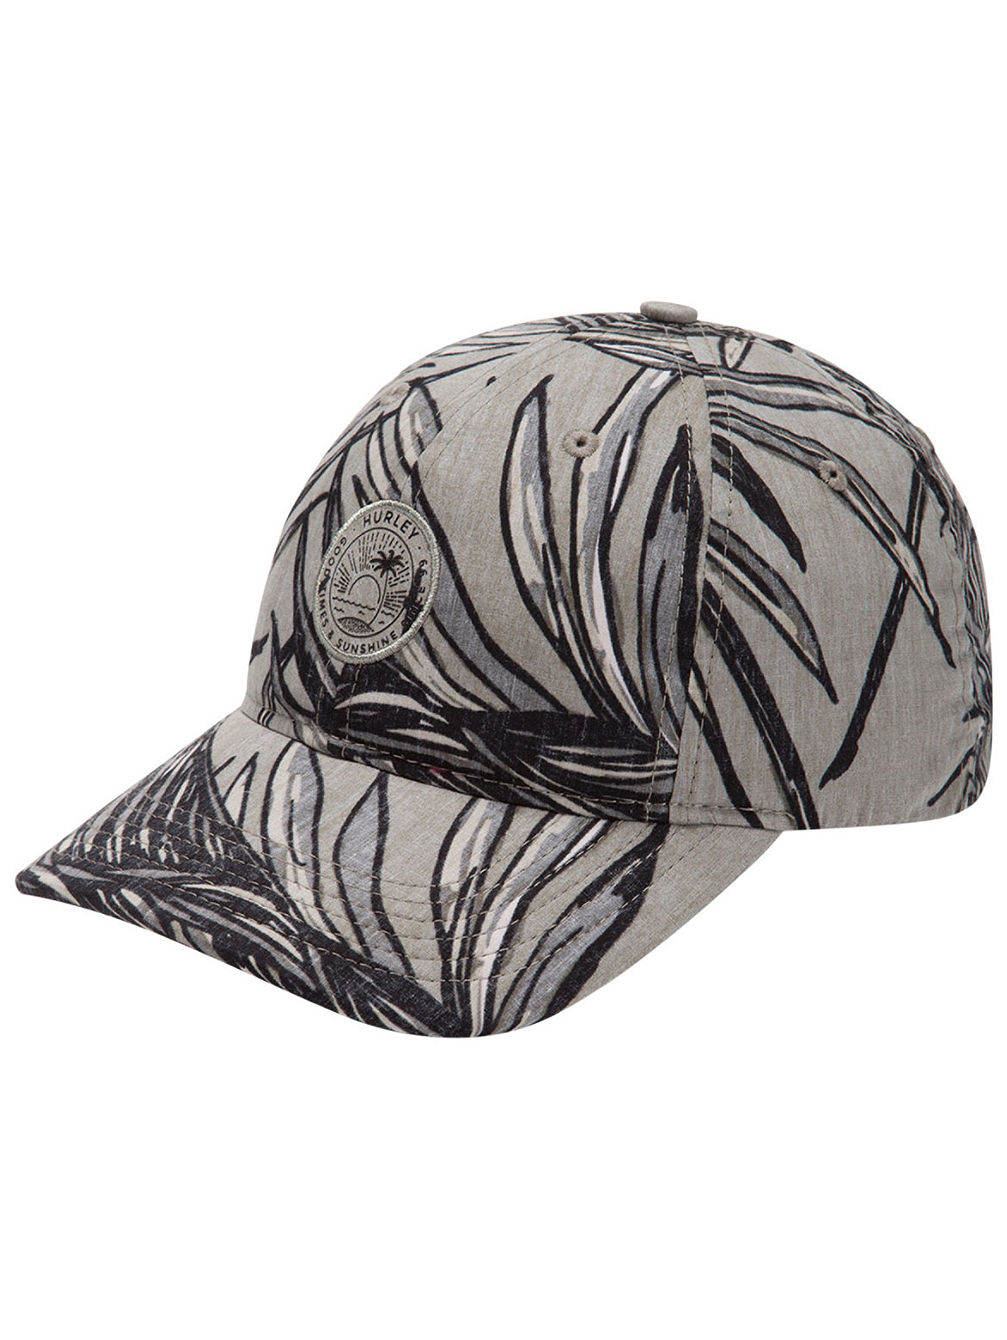 80576bf2e22 Buy Hurley Koko Cap online at Blue Tomato